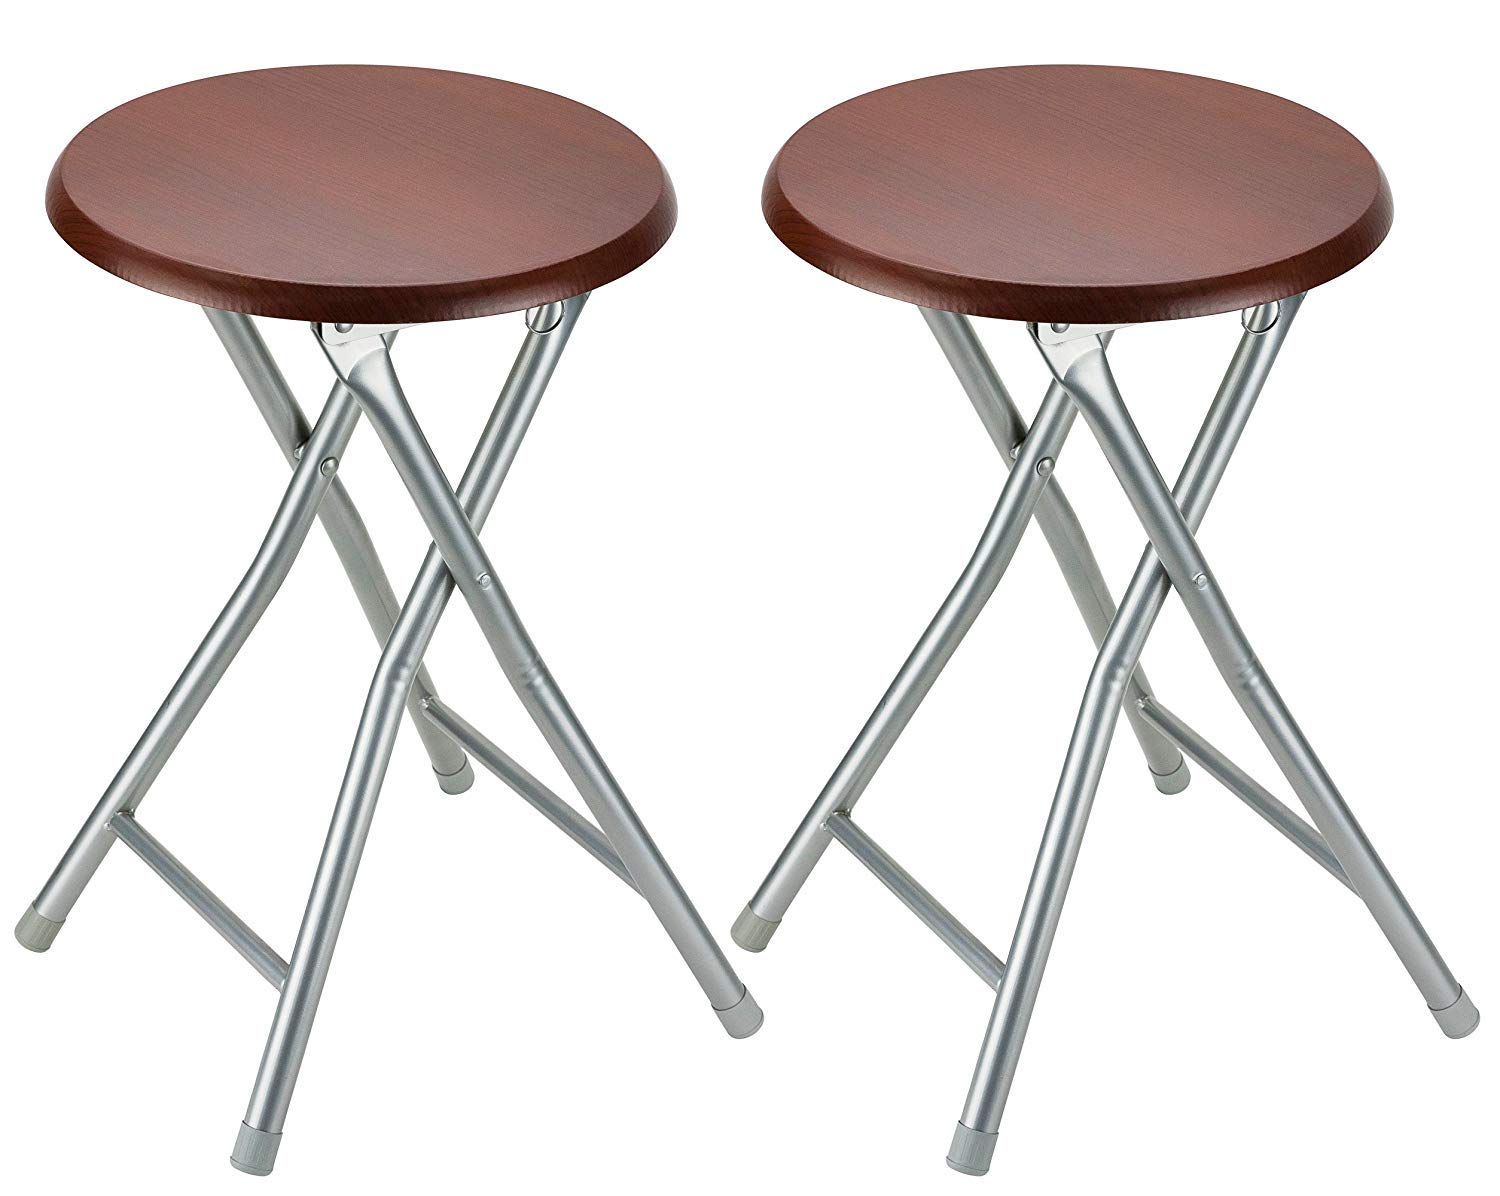 DecorRack Wooden Seat Folding Stool, 18 inch Portable Lightweight Foldable Chair, Collapsible Sitting Stool with Wooden Seating Top, Cherry (2 Pack) by DecorRack